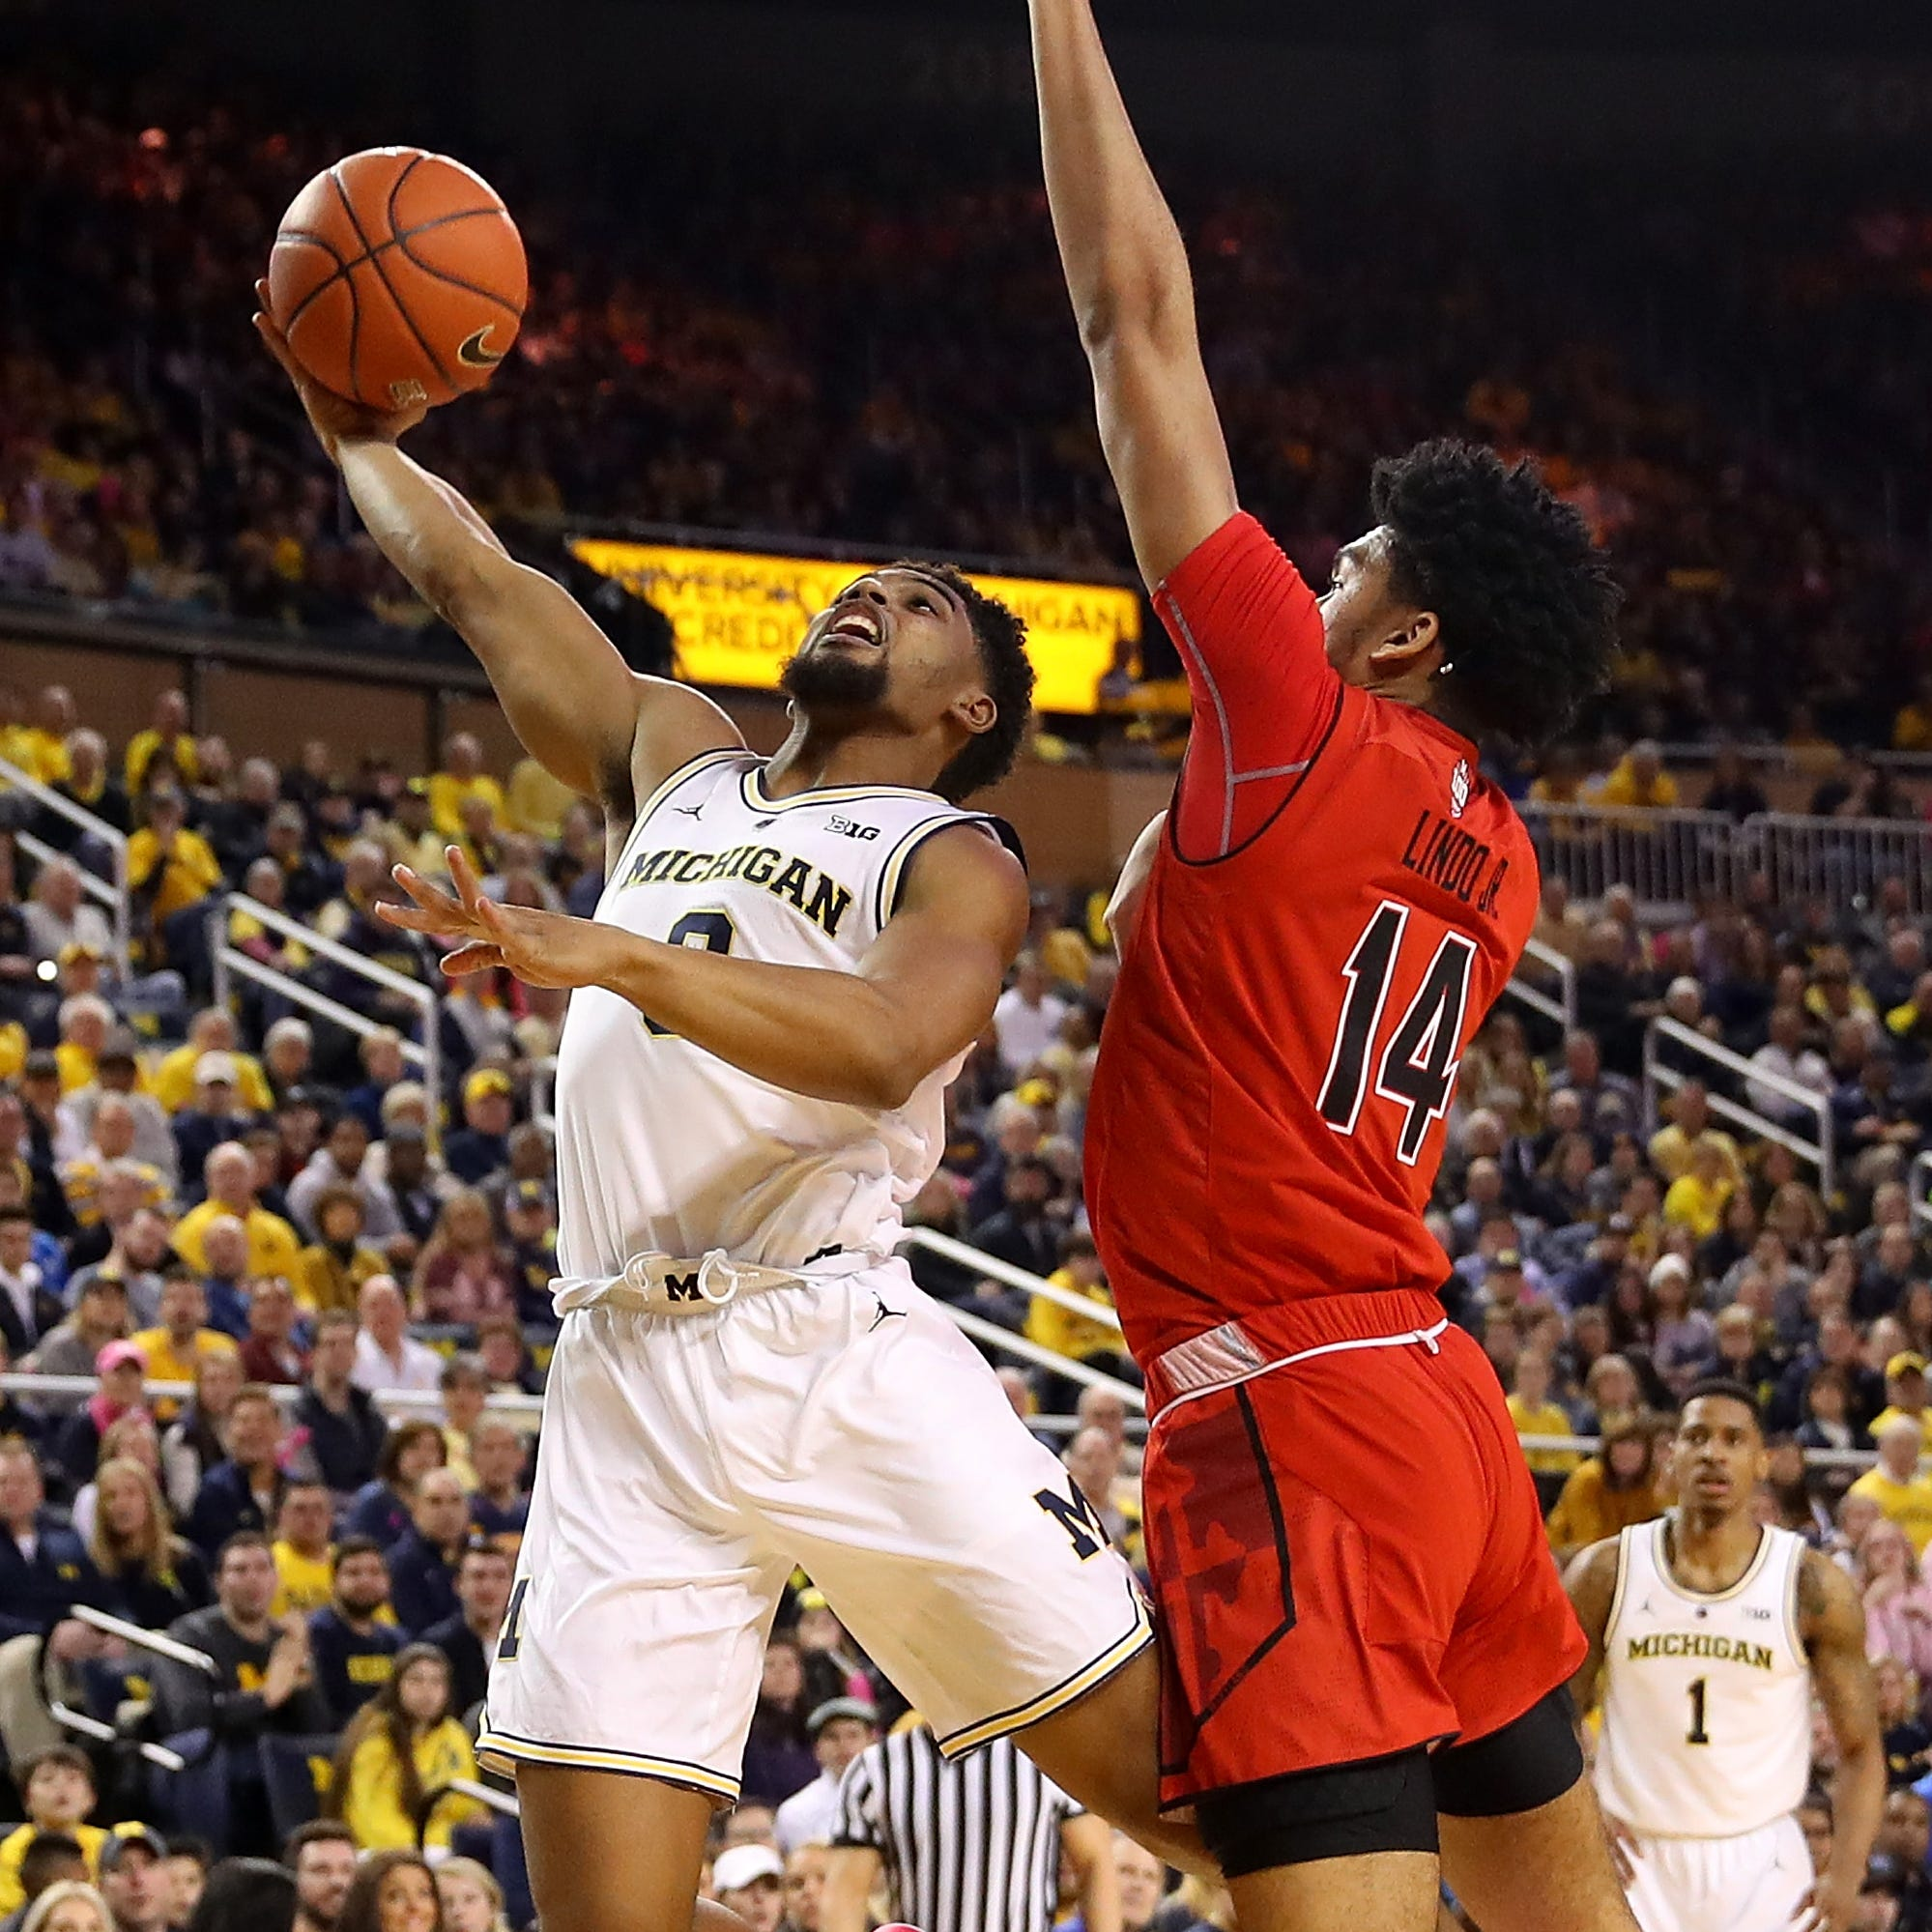 Michigan basketball freshman David DeJulius gets rare early playing time